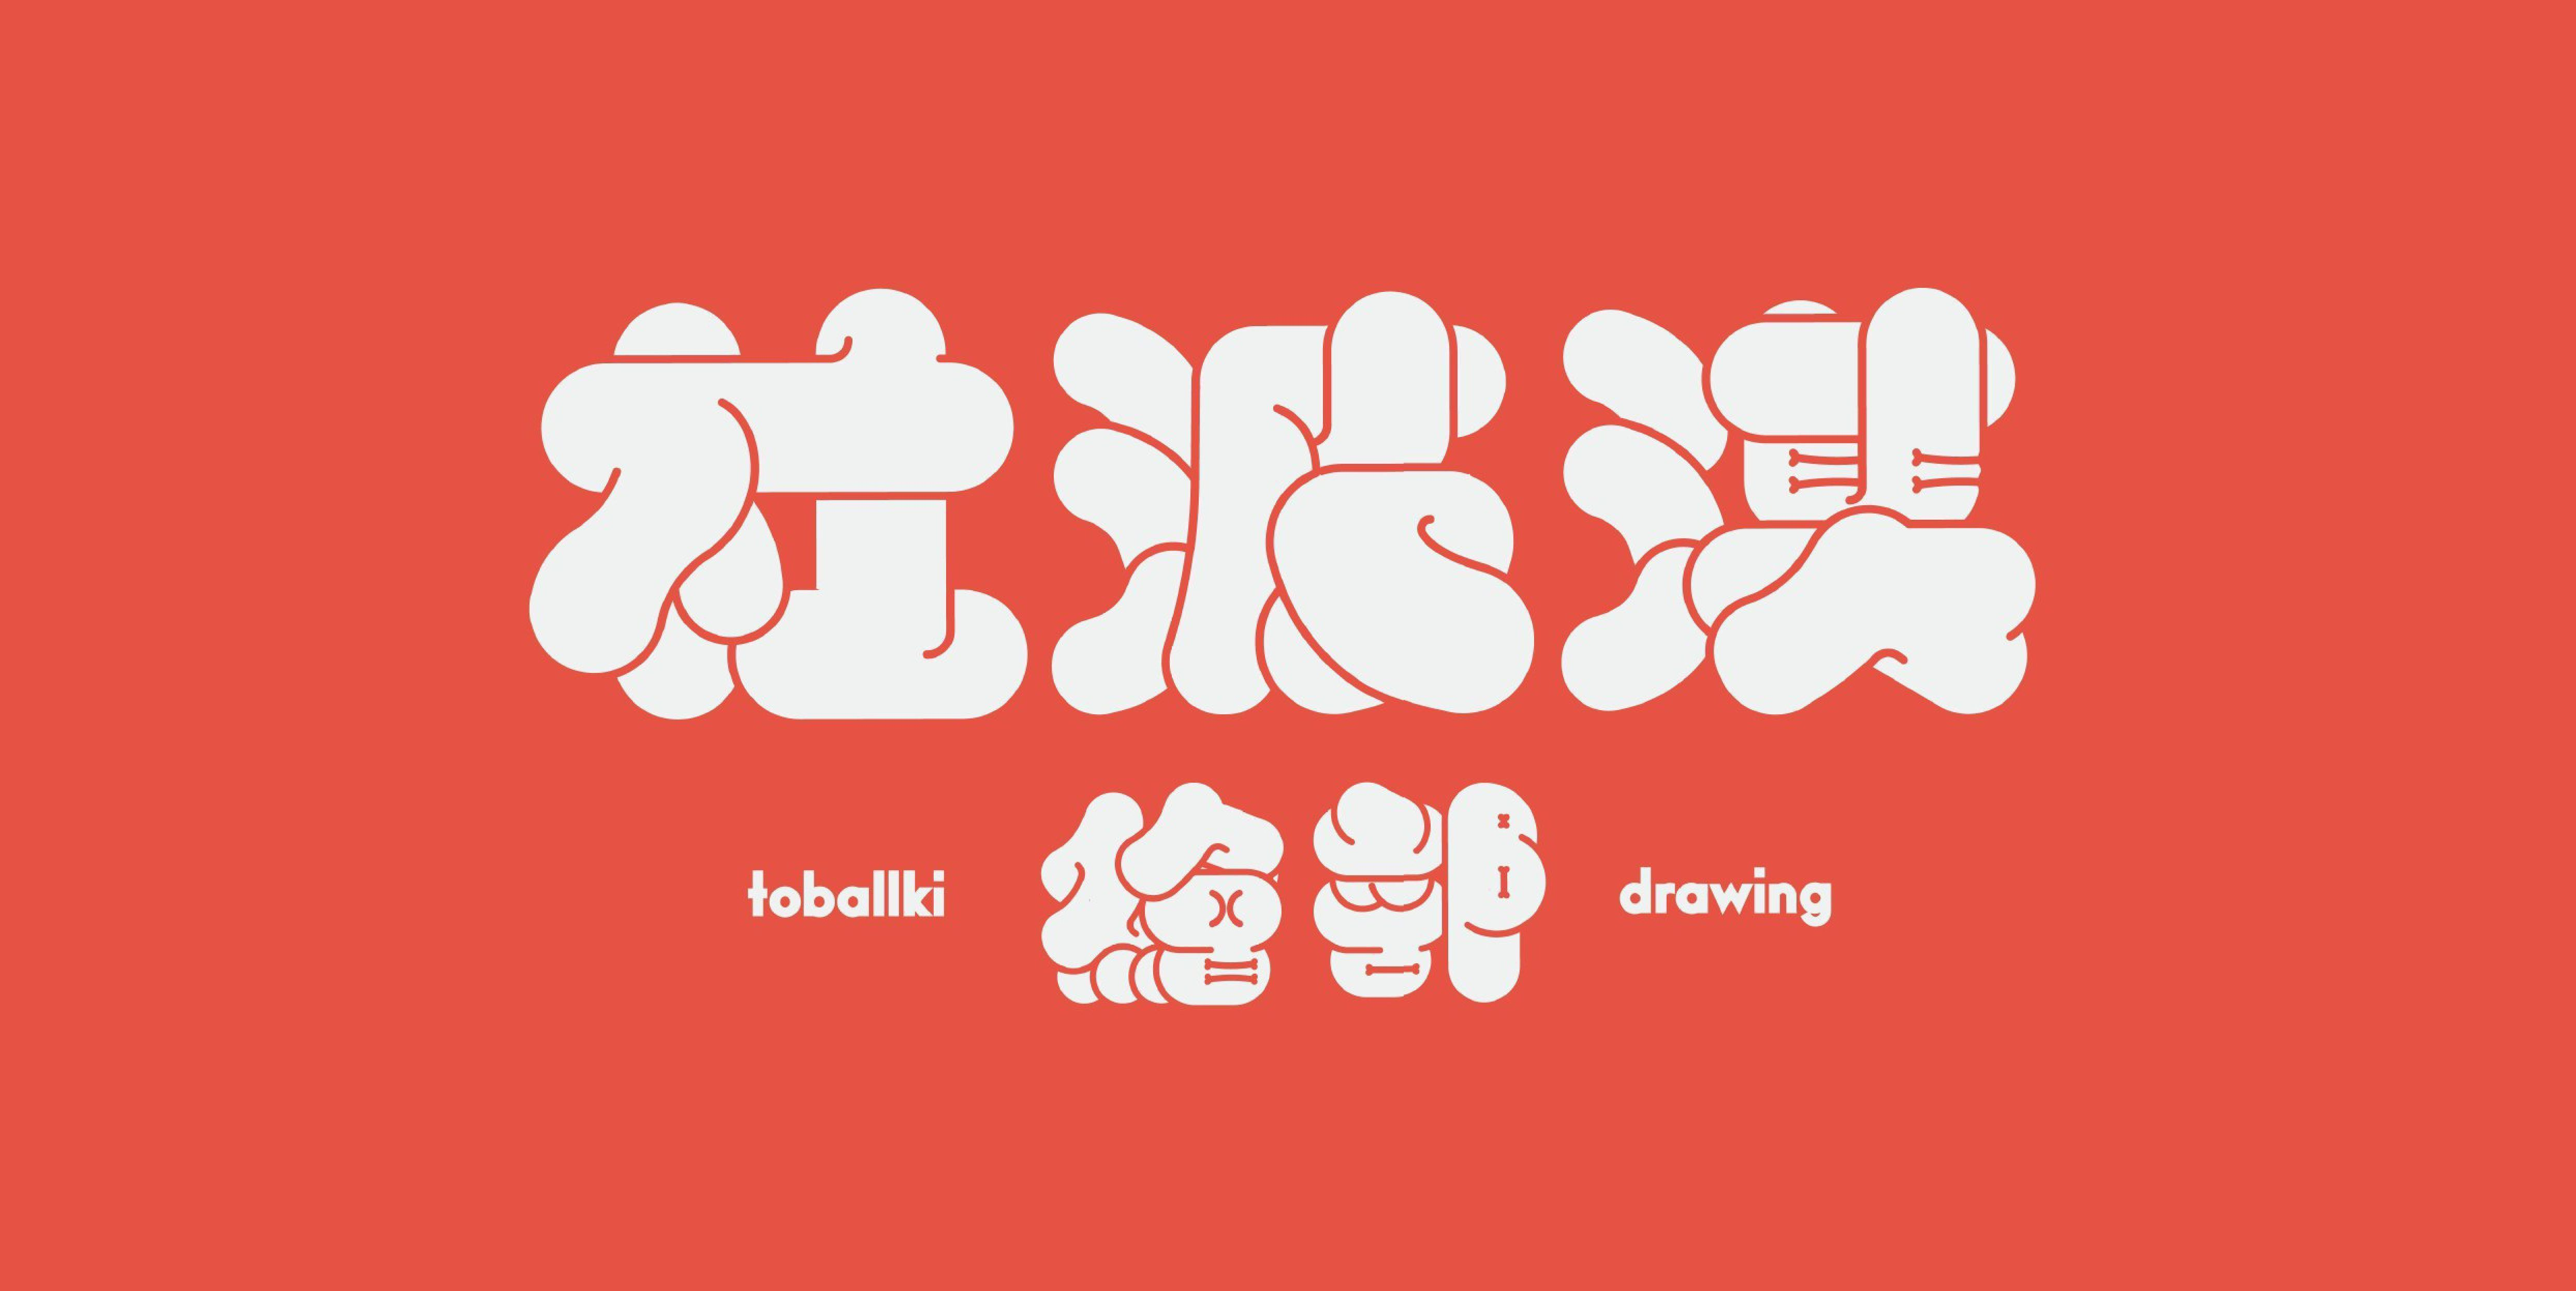 Fat and a little bit cute Chinese typography #chinesetypography #chinesetypography Fat and a little bit cute Chinese typography #chinesetypography #chinesetypography Fat and a little bit cute Chinese typography #chinesetypography #chinesetypography Fat and a little bit cute Chinese typography #chinesetypography #chinesetypography Fat and a little bit cute Chinese typography #chinesetypography #chinesetypography Fat and a little bit cute Chinese typography #chinesetypography #chinesetypography Fa #chinesetypography